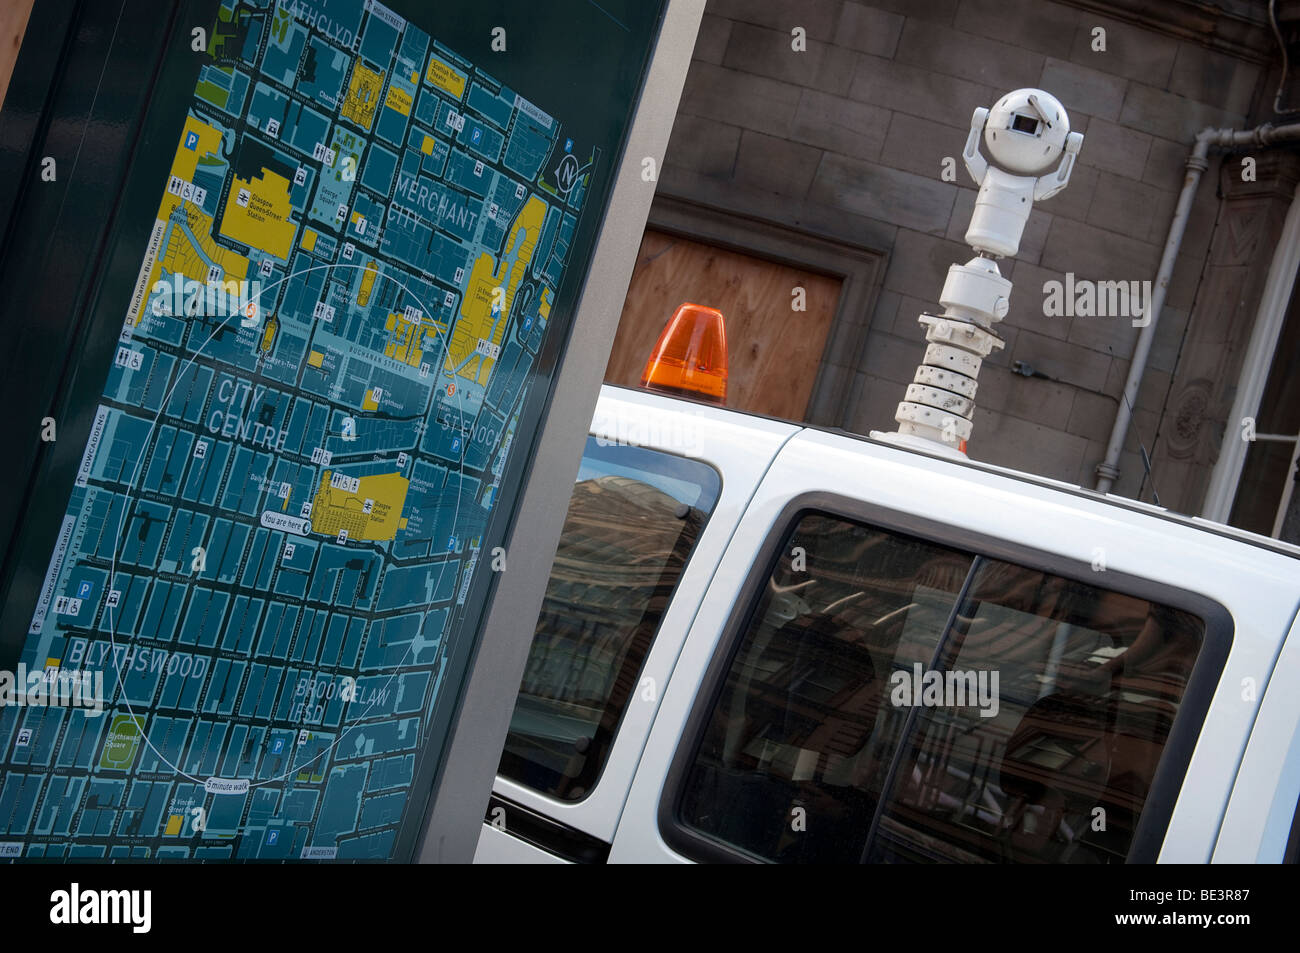 A mobile CCTV van parked next to a map of Glasgow City Center outside Glasgow Central Station. - Stock Image